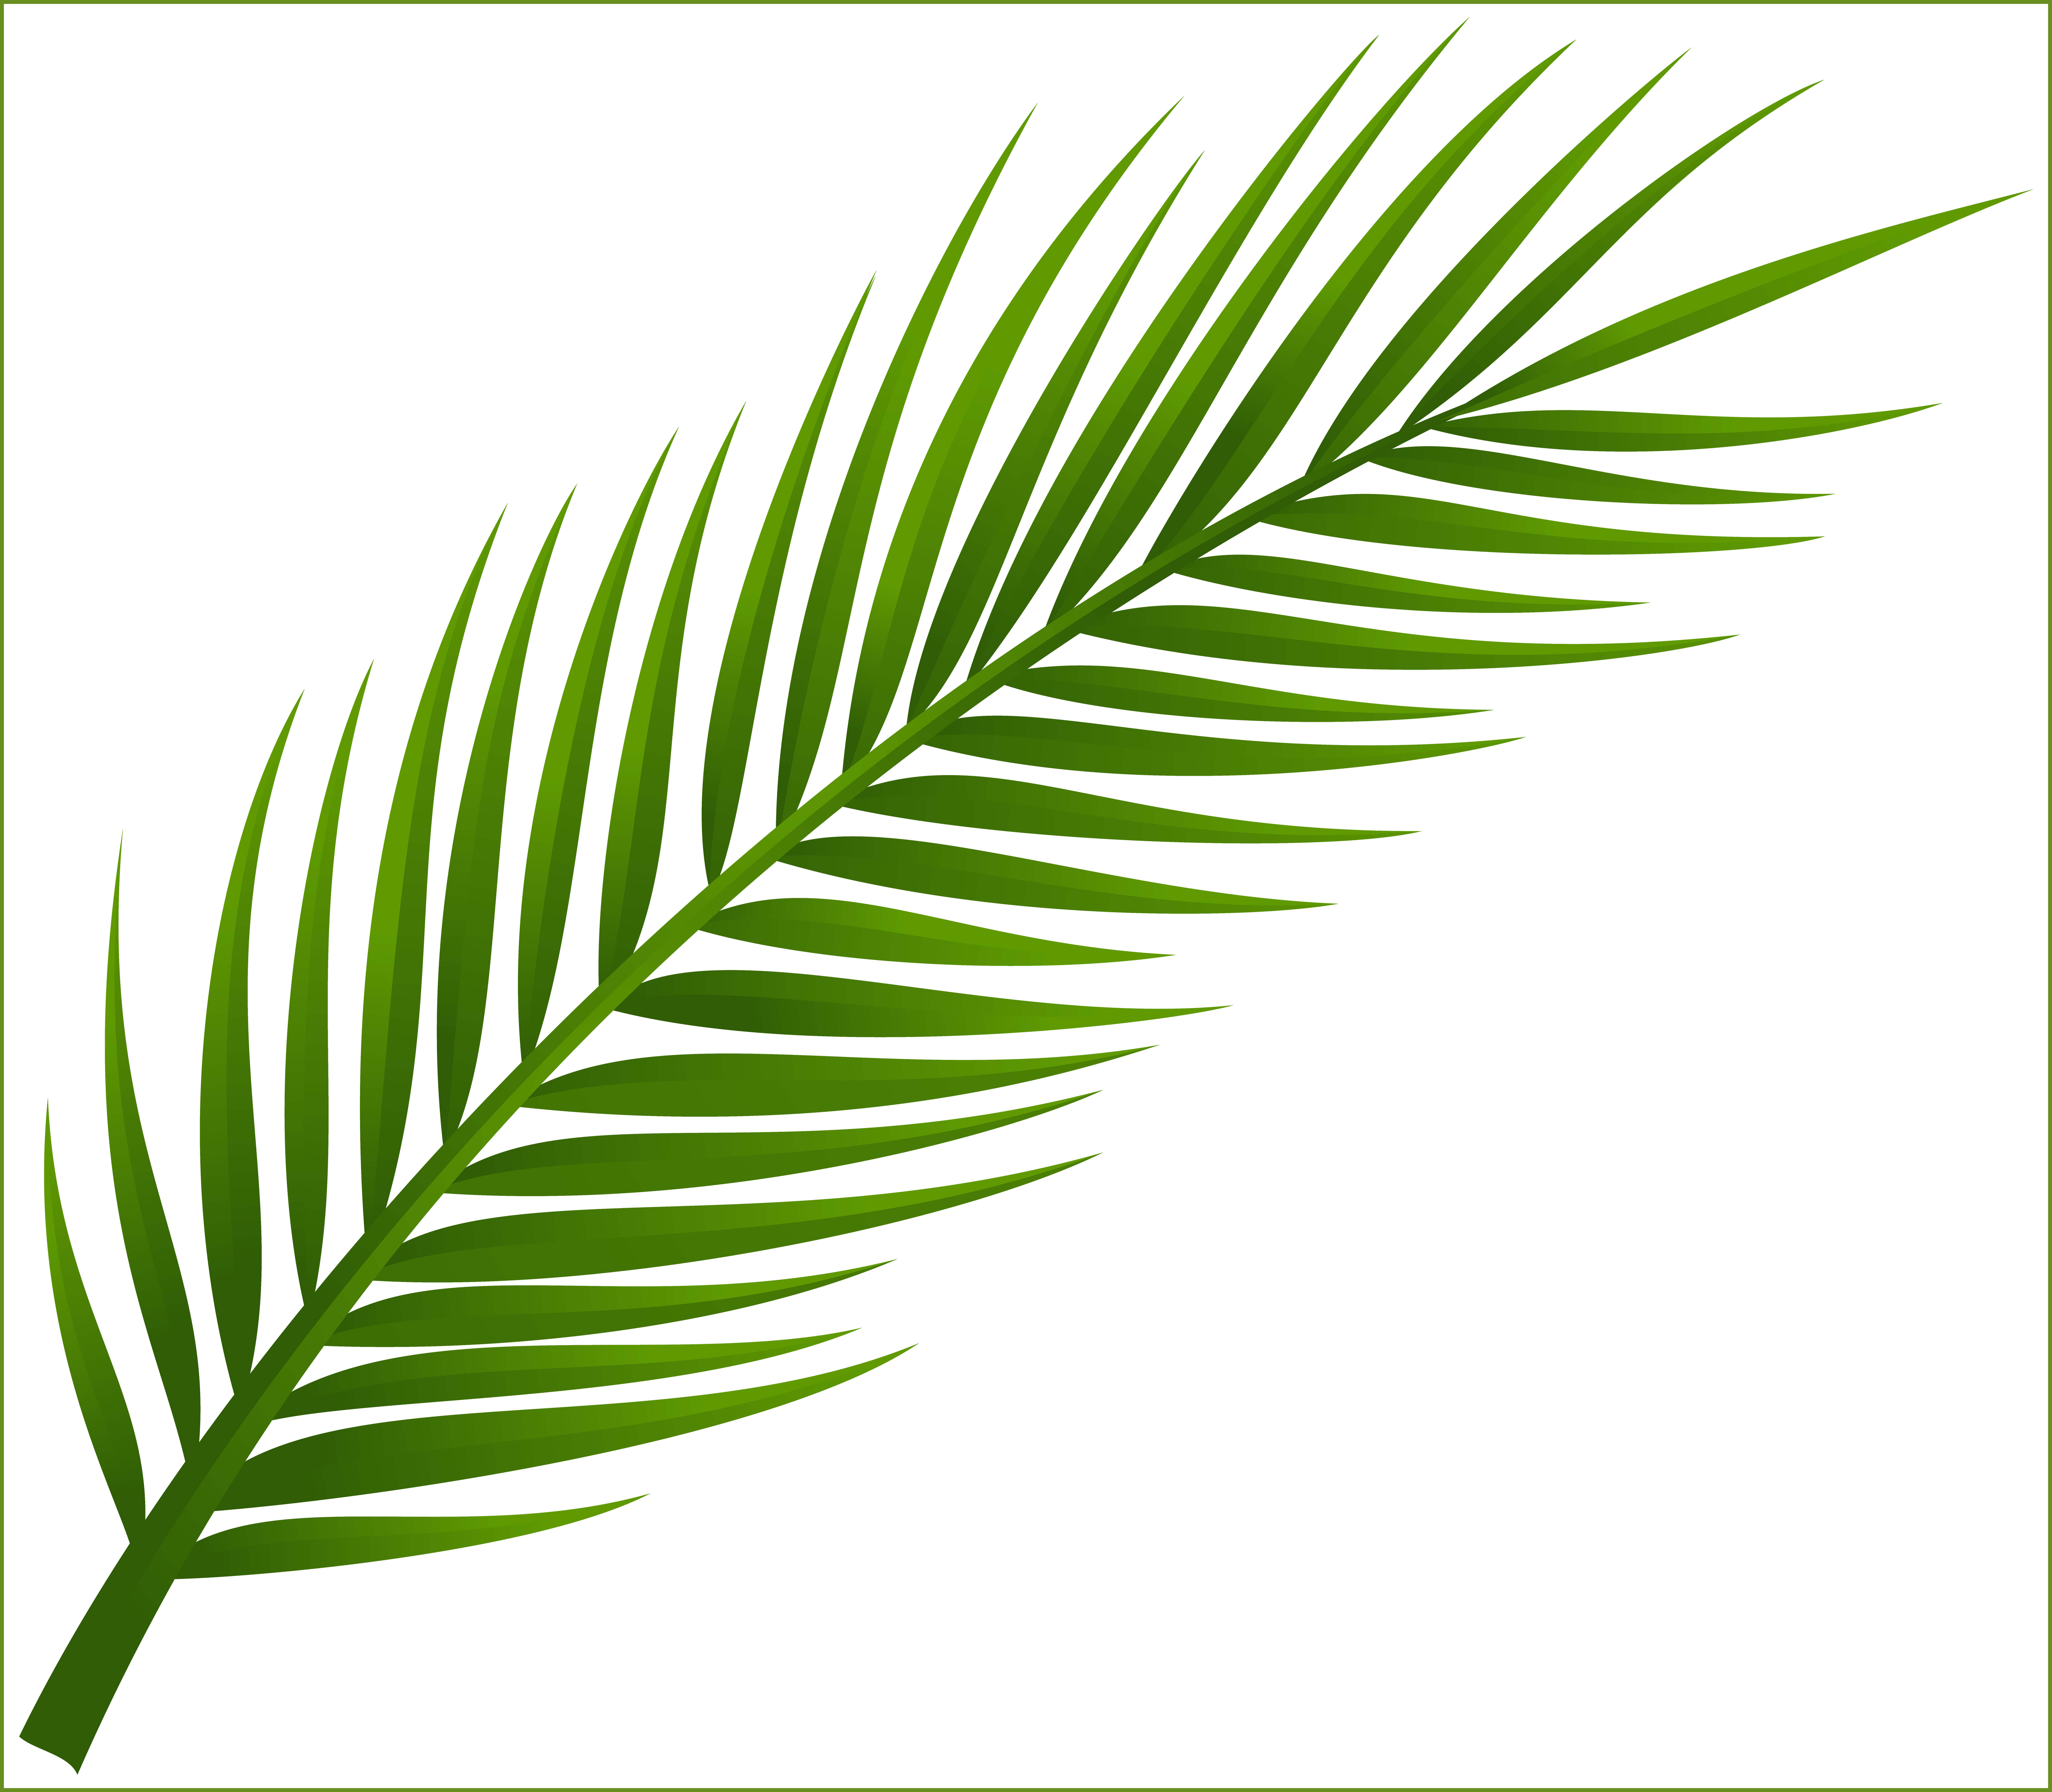 Leaf clipart coconut tree. Download png image with